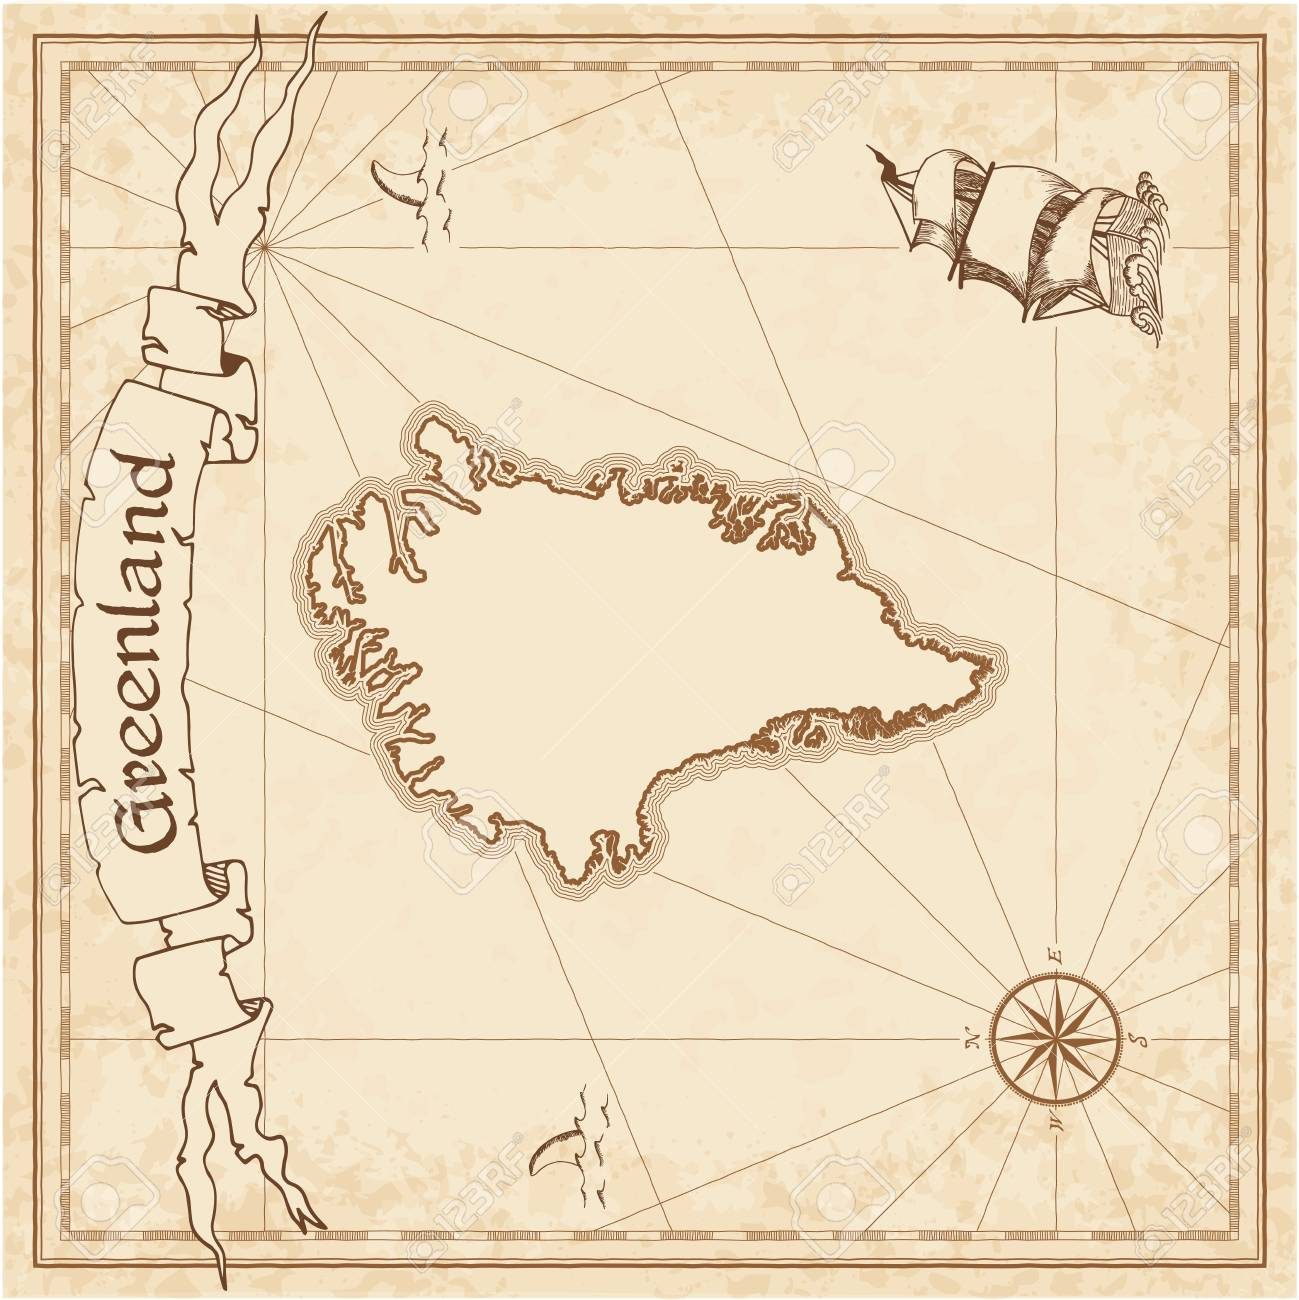 Greenland Old Treasure Map Sepia Engraved Template Of Pirate Stylized On